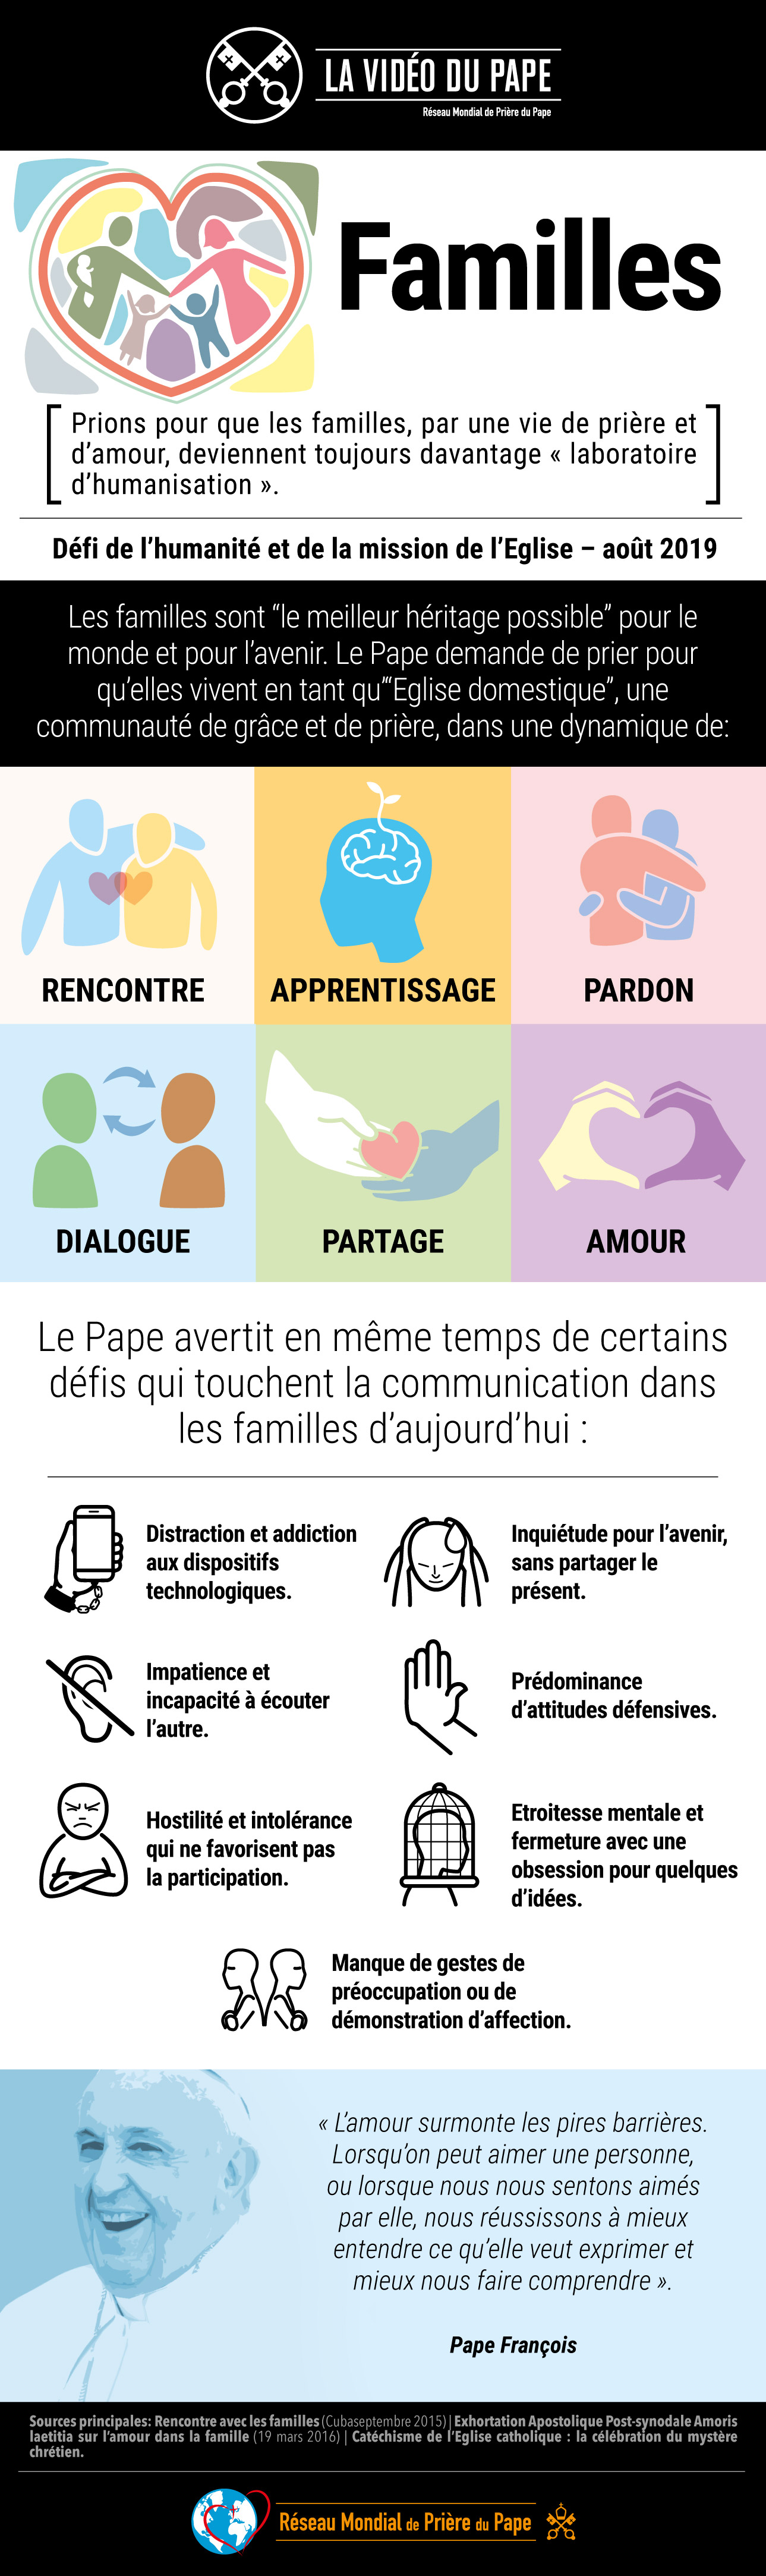 Infographic_The Pope Video_Juillet